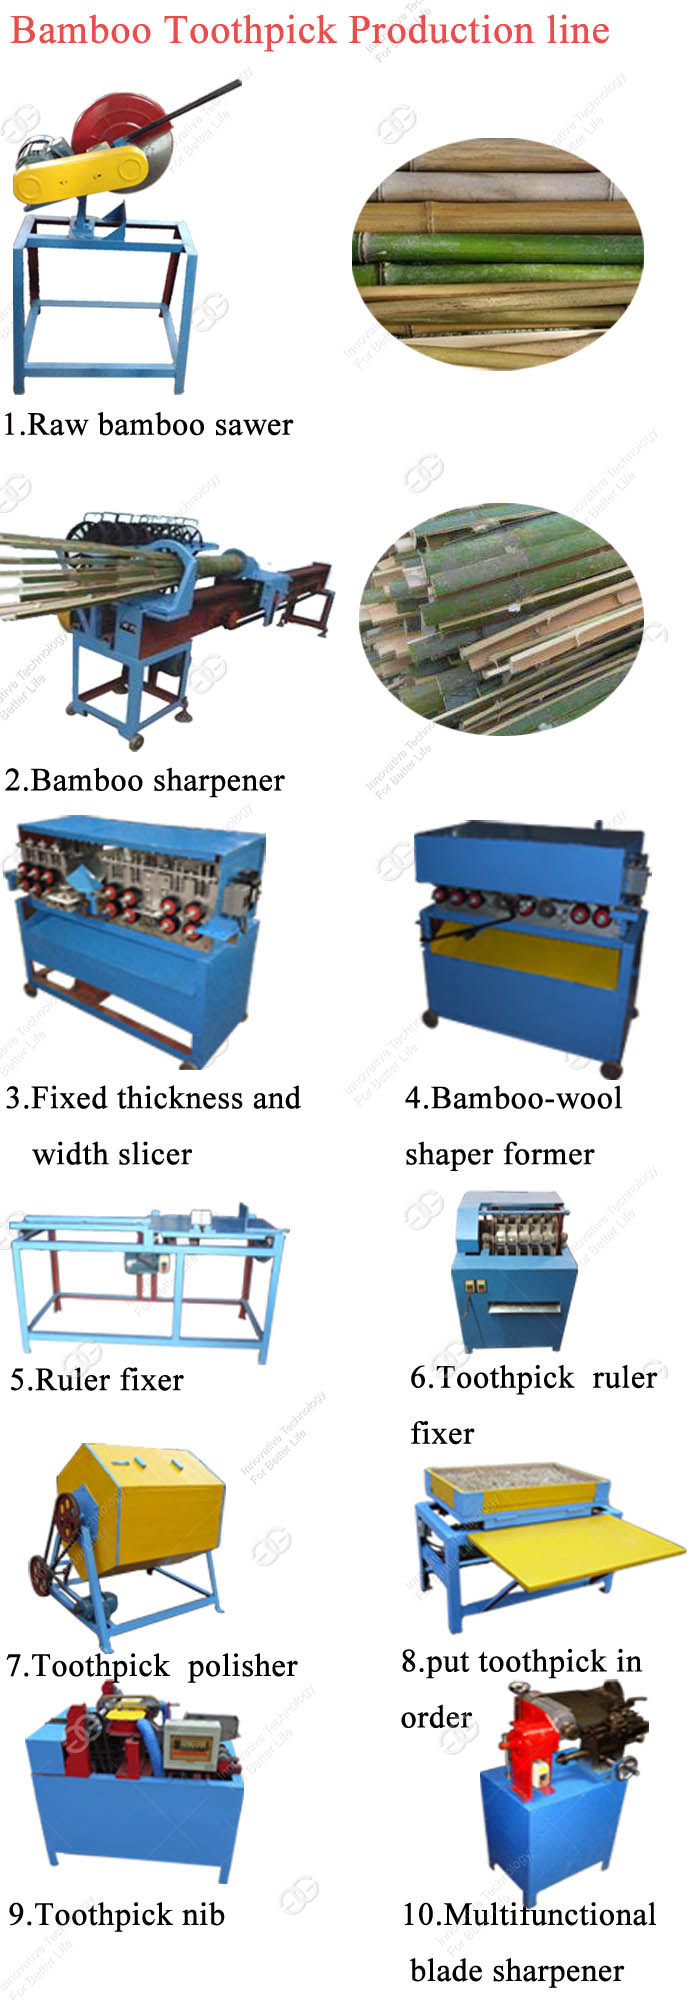 Factory Price Bbq Barbecue Wooden Stick Product Maker Making Machine Bamboo Toothpick Processing Line